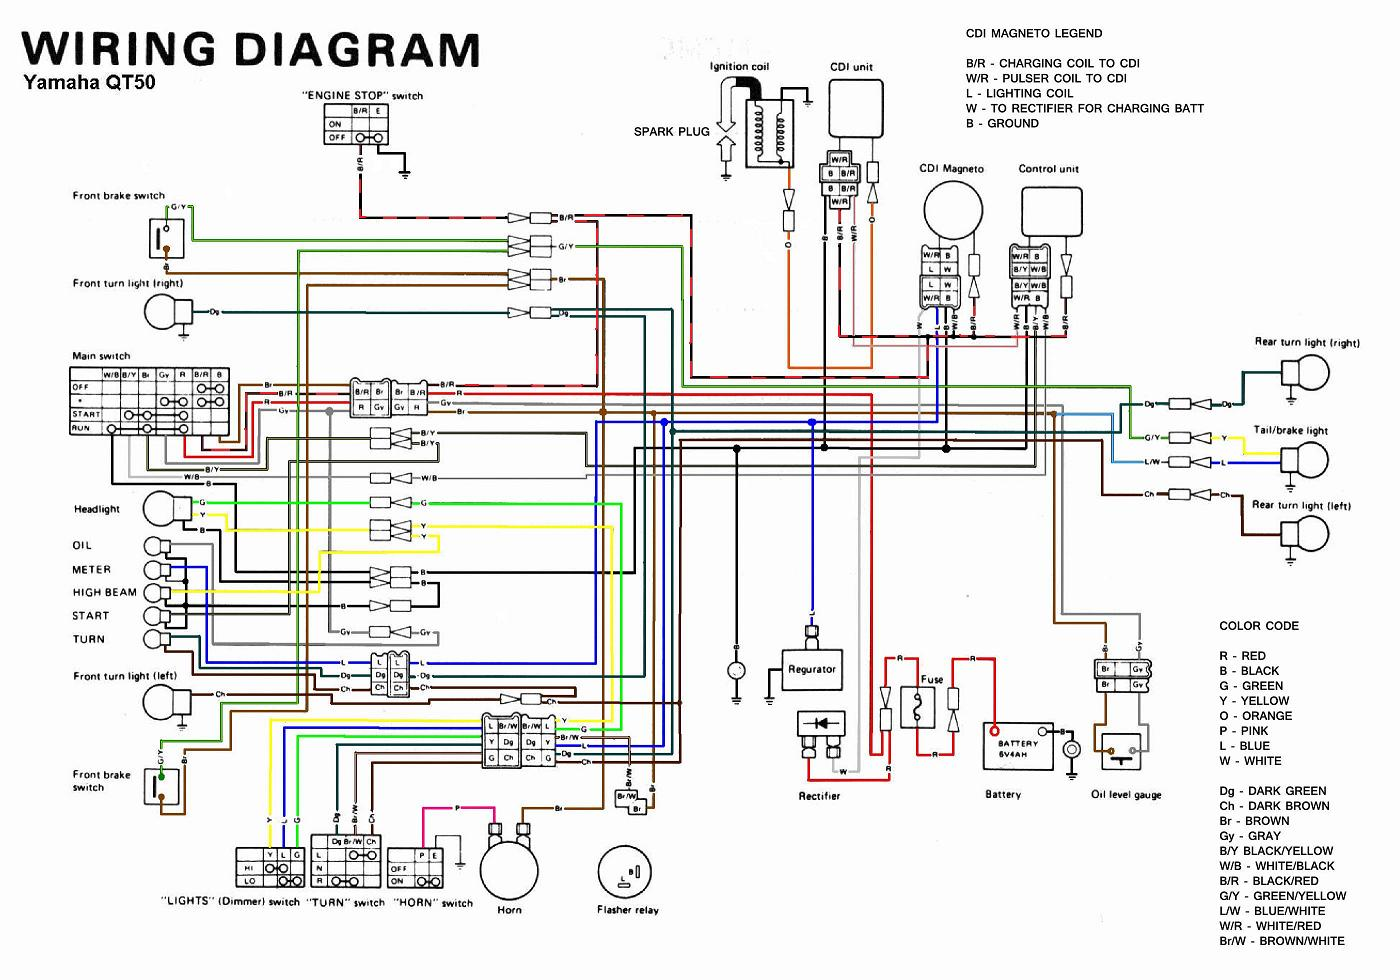 Yamaha QT50 Wiring Diagram yamaha qt50 wiring diagram yamaha qt50 luvin and other nopeds 1986 yamaha moto 4 200 wiring schematic at alyssarenee.co